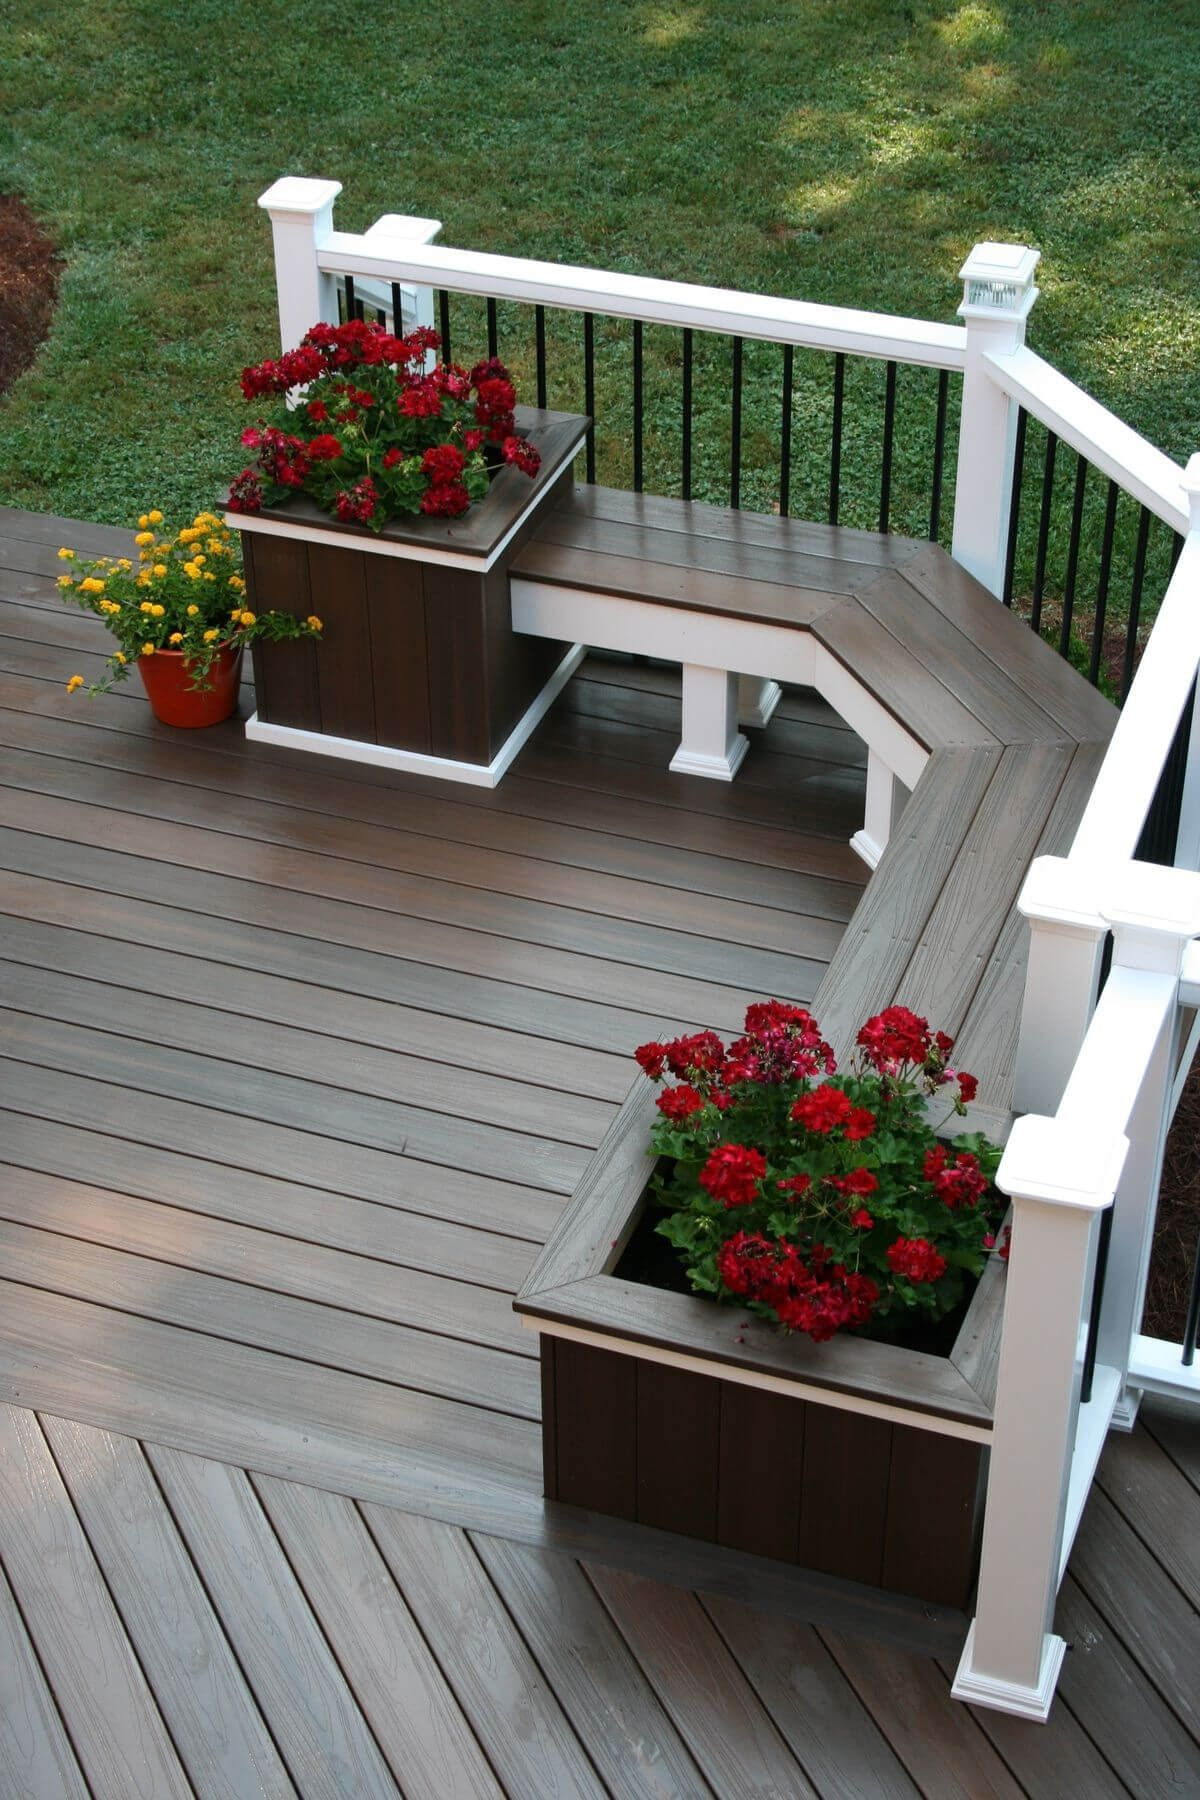 33 Beautiful Built In Planter Ideas To Upgrade Your Outdoor Space